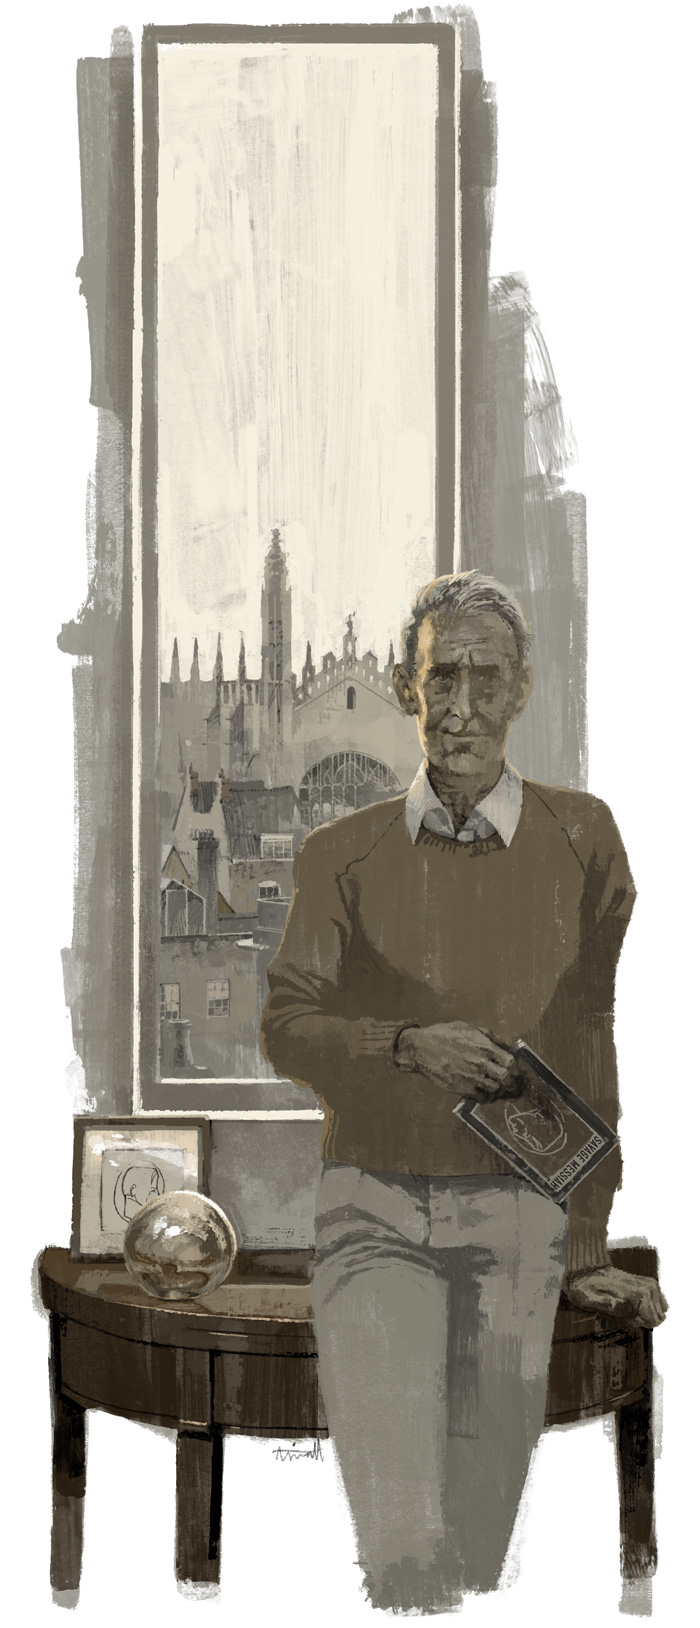 Jim Ede portrait for World of Interiors Magazine by Marc Aspinall